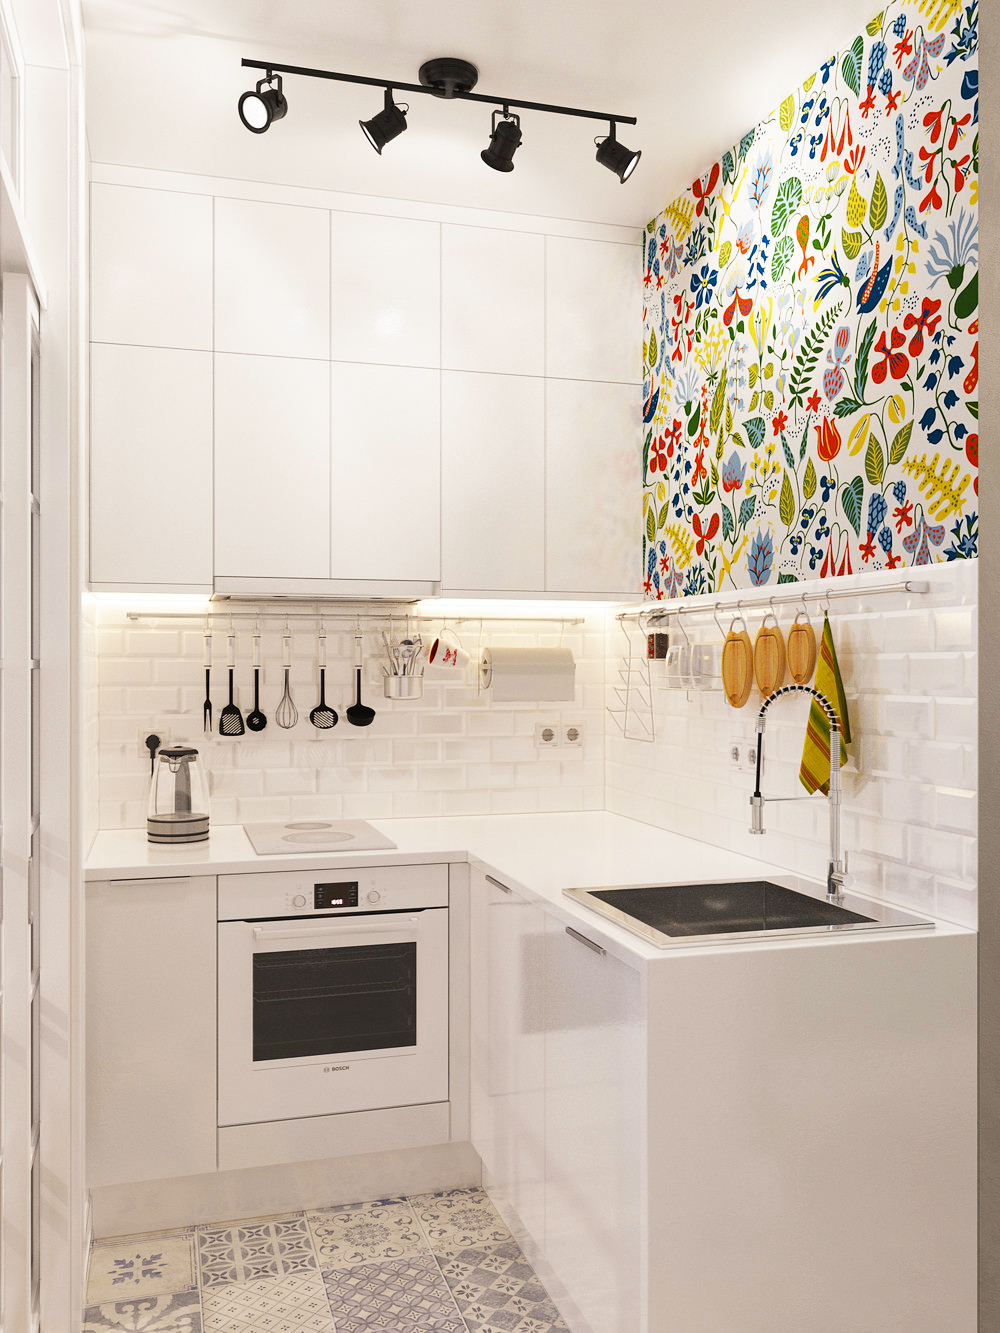 ideas-for-small-kitchens-design-ideas-for-white-small-kitchen-remodeling-ideas-with-spot-hanging-lamps-and-colorfull-wallpaper-ideas-for-small-kitchen-layouts